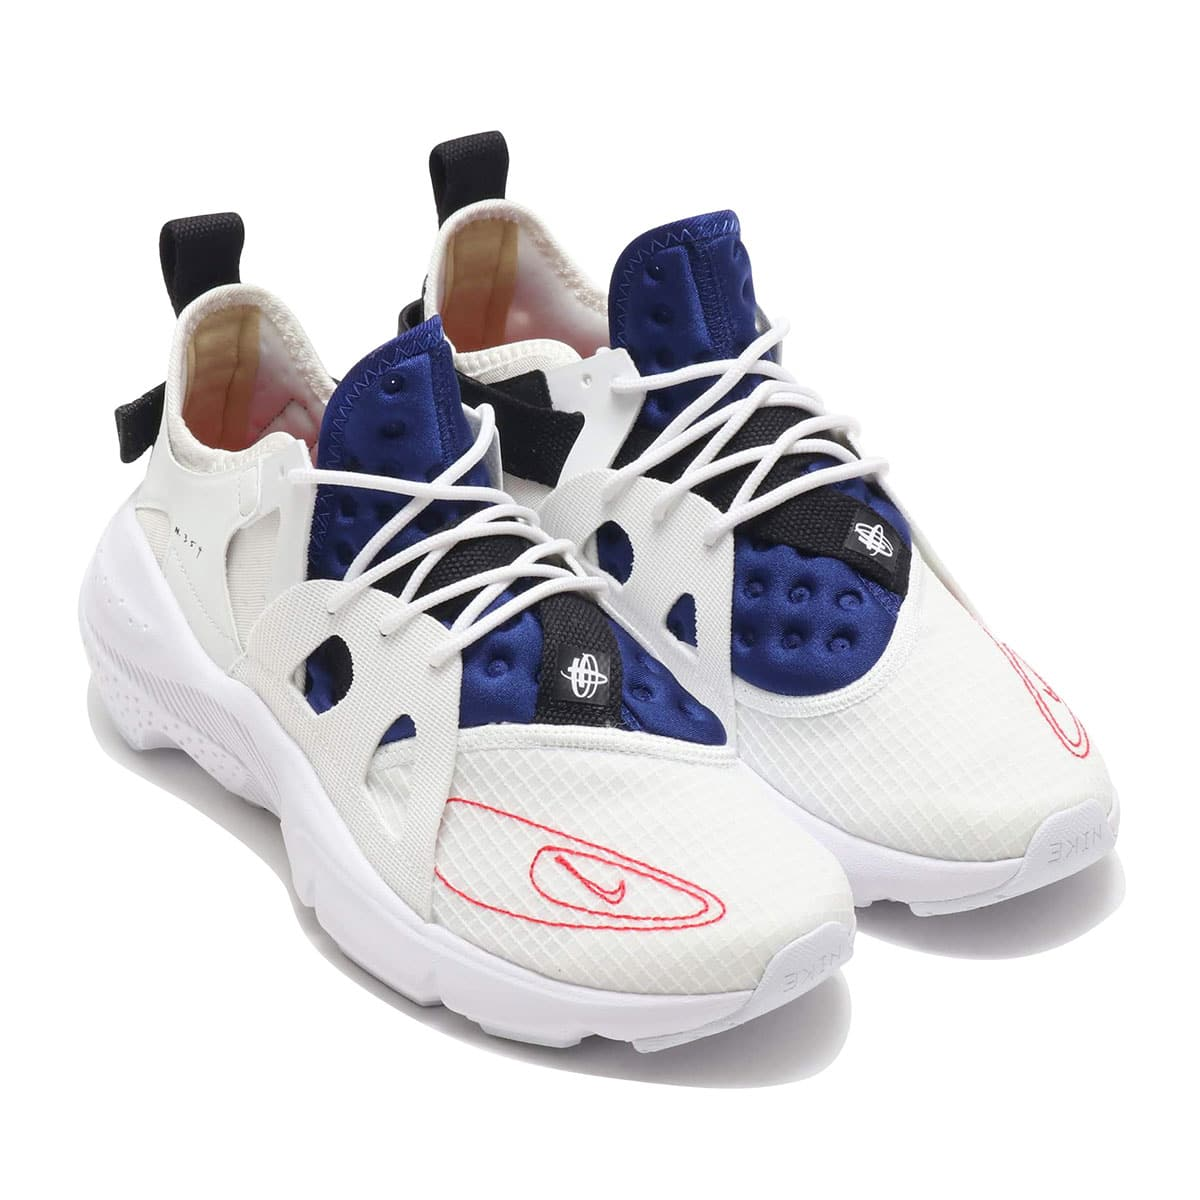 NIKE HUARACHE-TYPE SUMMIT WHITE/UNIVERSITY RED 19FA-S_photo_large